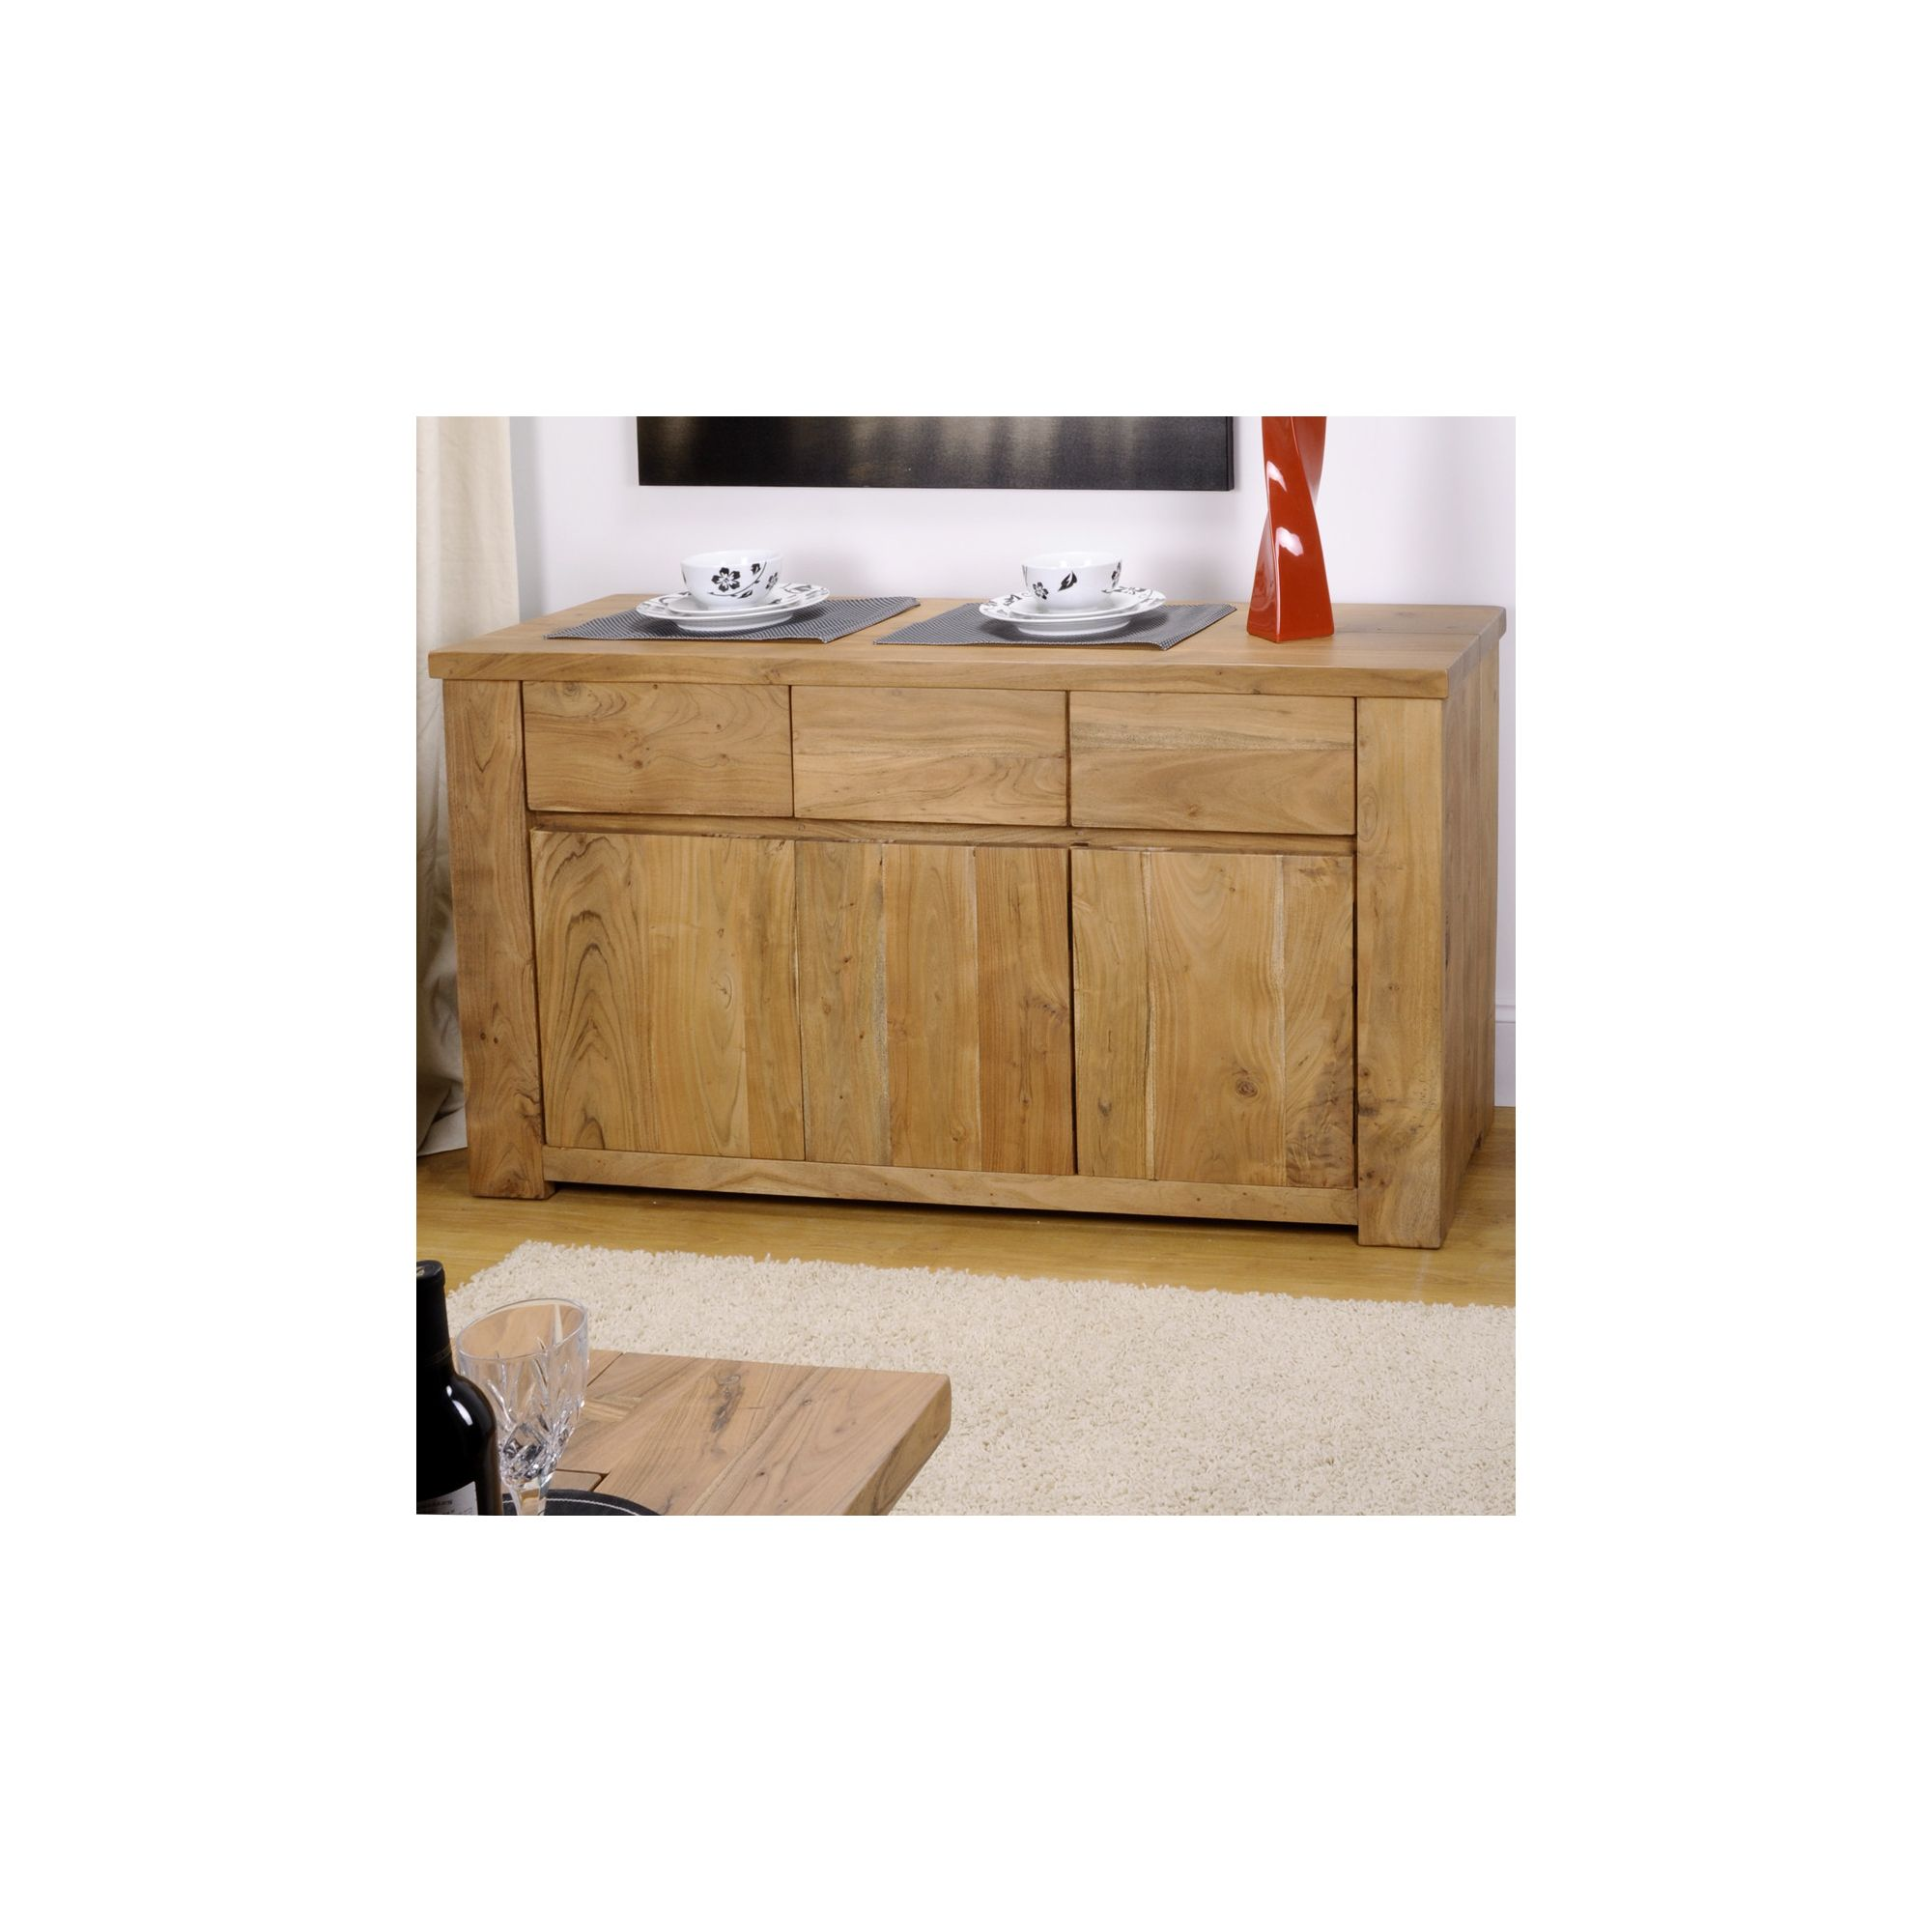 Shankar Enterprises Alwar Sideboard - Large at Tesco Direct